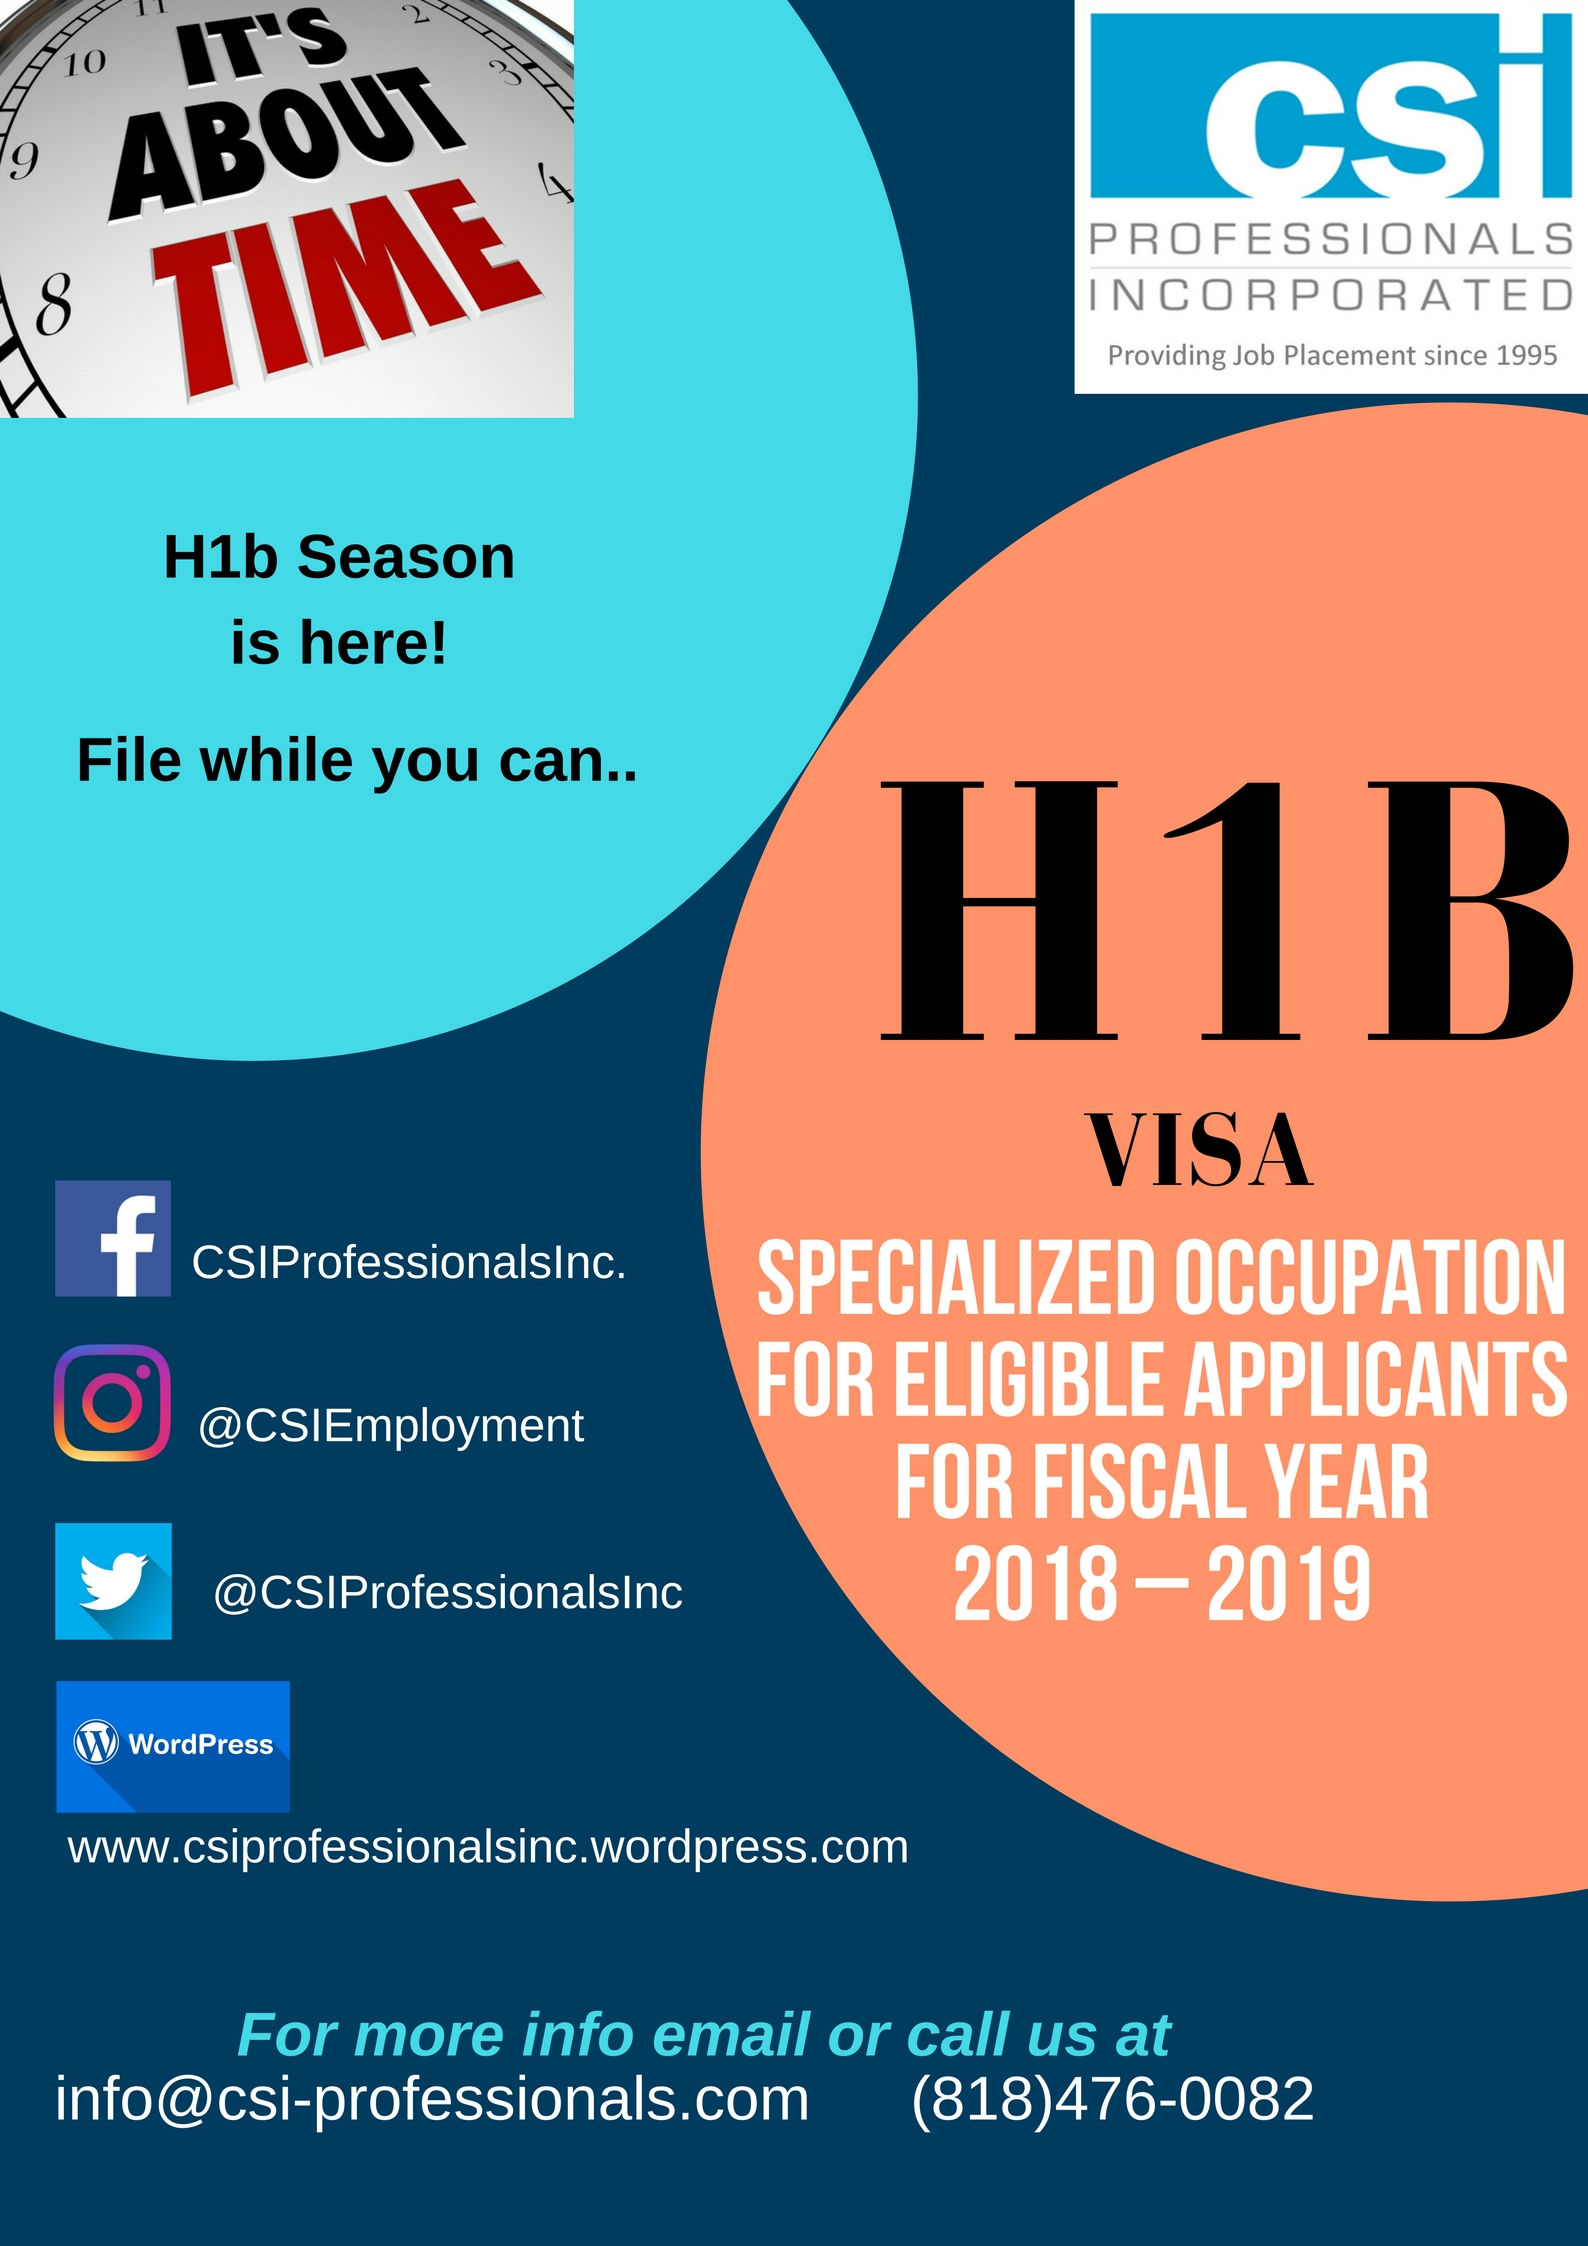 OFFICIALLY ON H1B SEASON AND COUNTDOWN BEFORE APRIL 1ST  | Csi